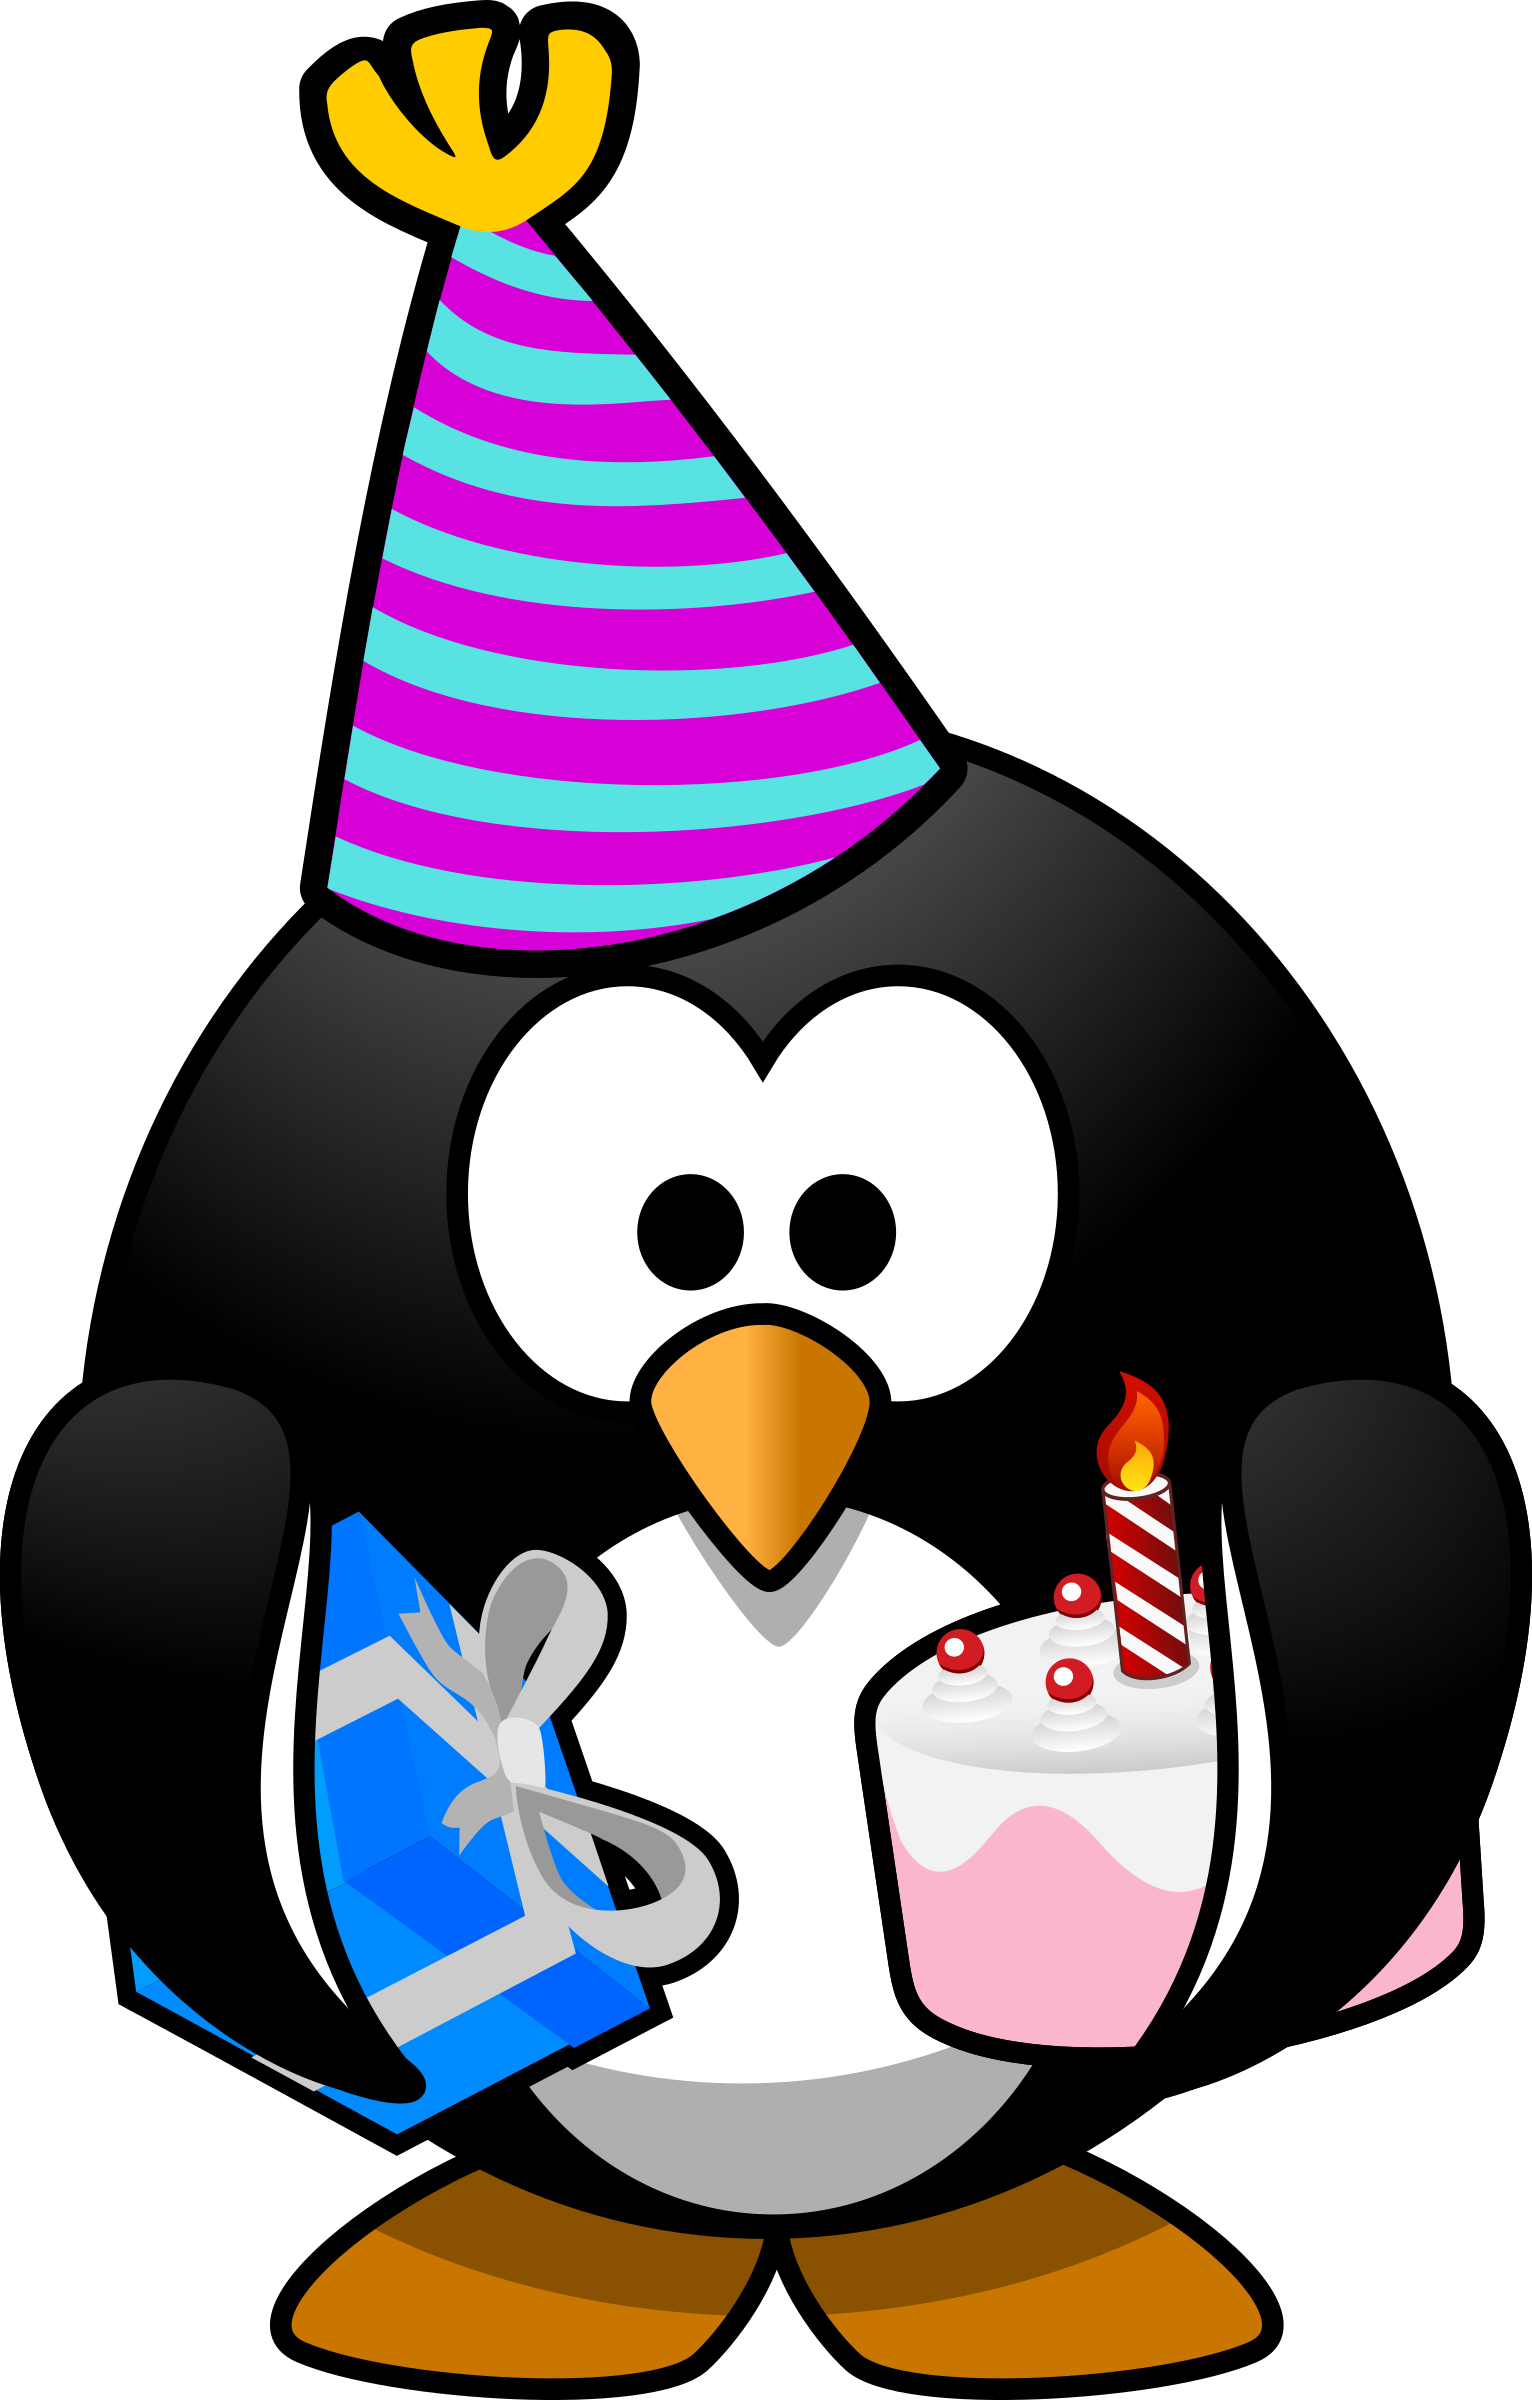 Pet clipart winter. Party penguin big image